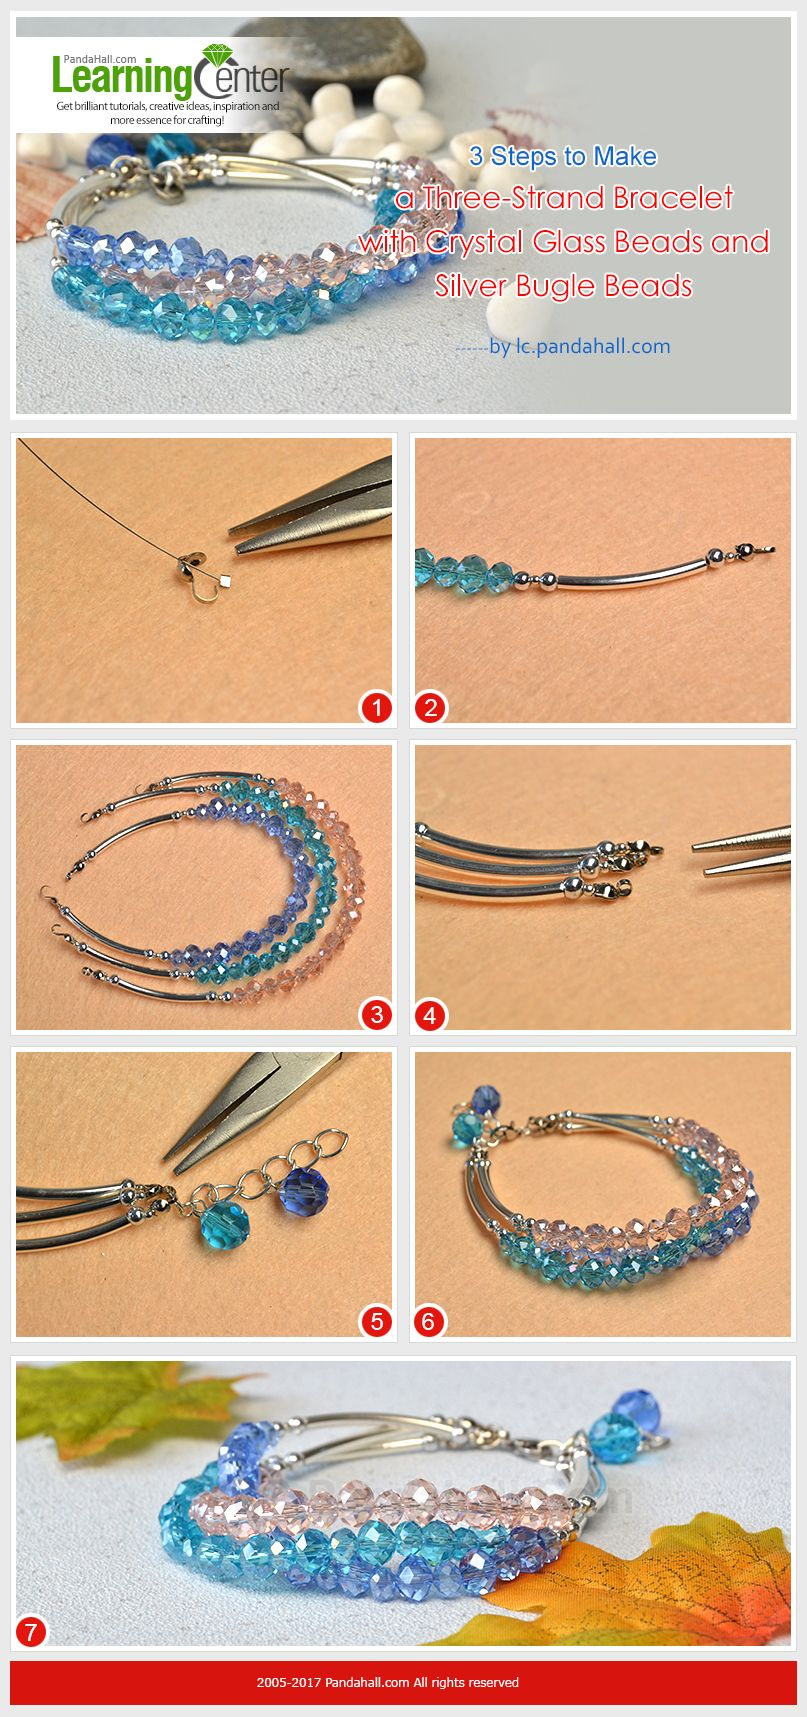 lc the you making bracelet glass for beads see from tutorial pin pandahall blue can